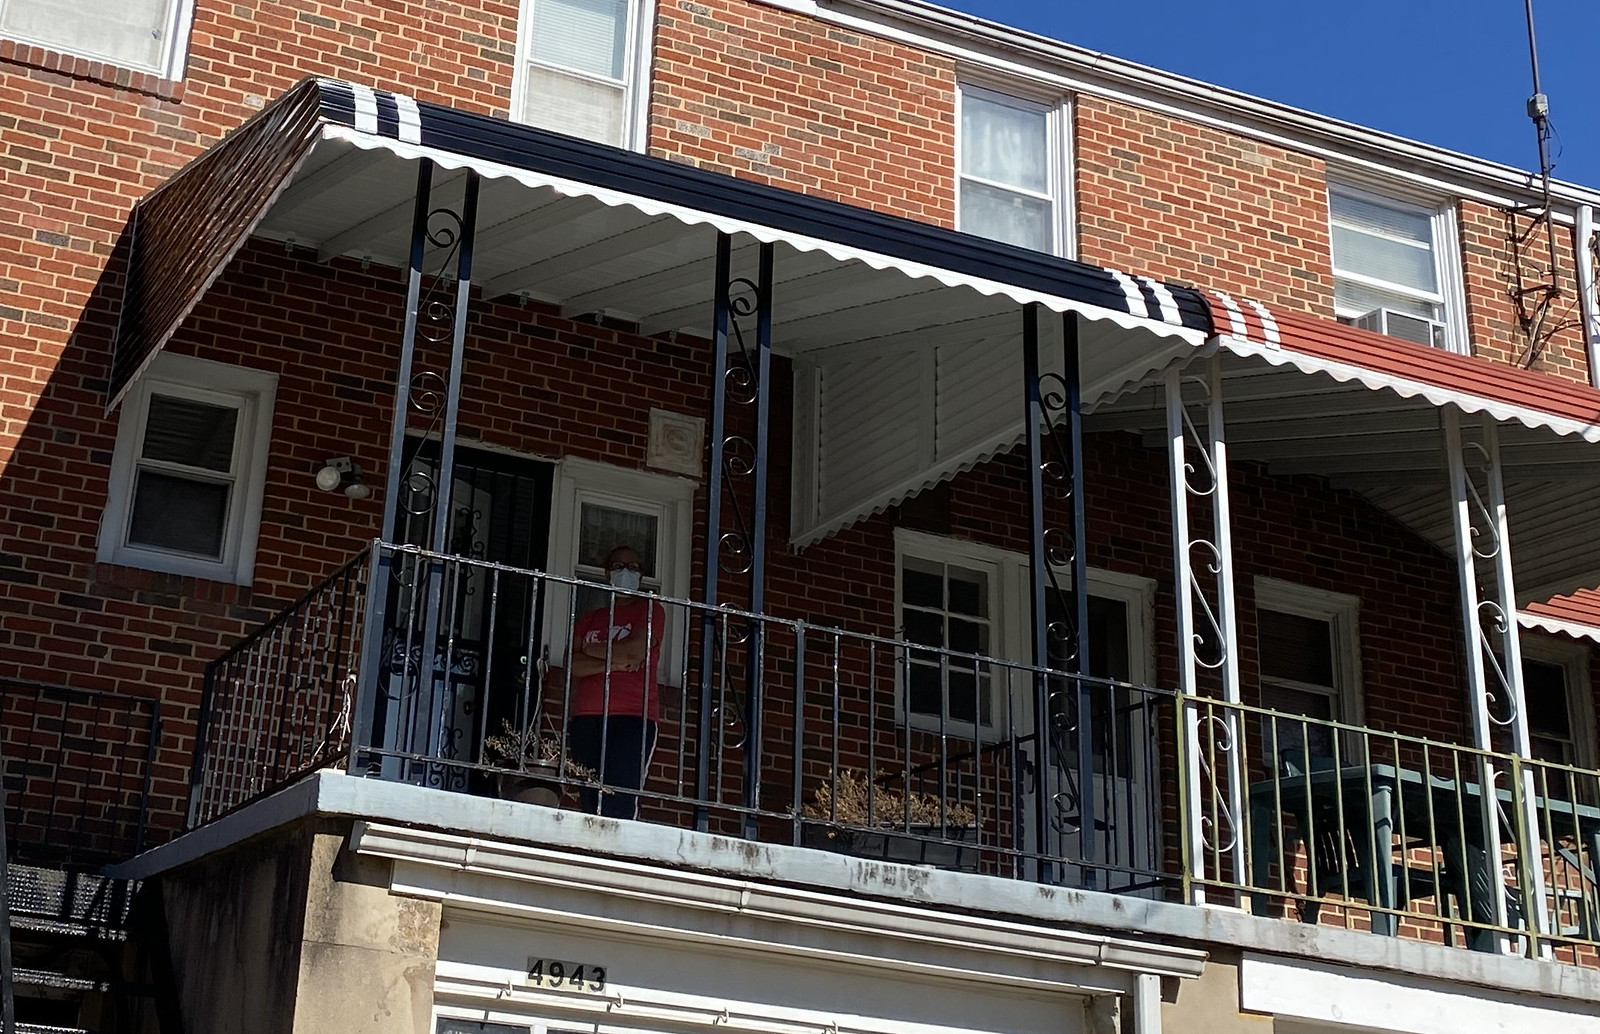 Stepdown Awning Porch -Rafters